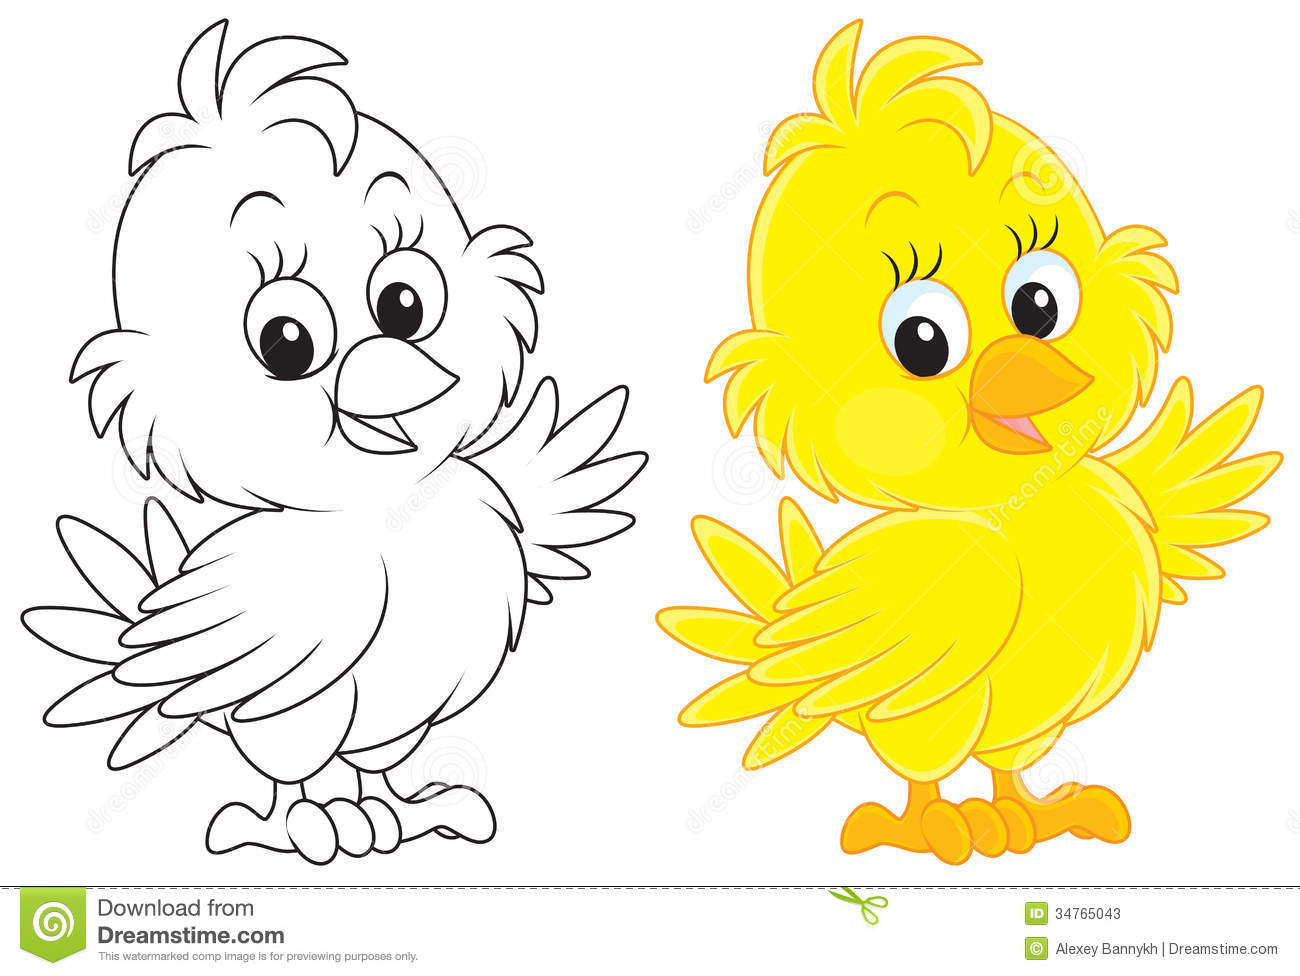 Little Yellow Chick Color And Black And White Outline Illustrations